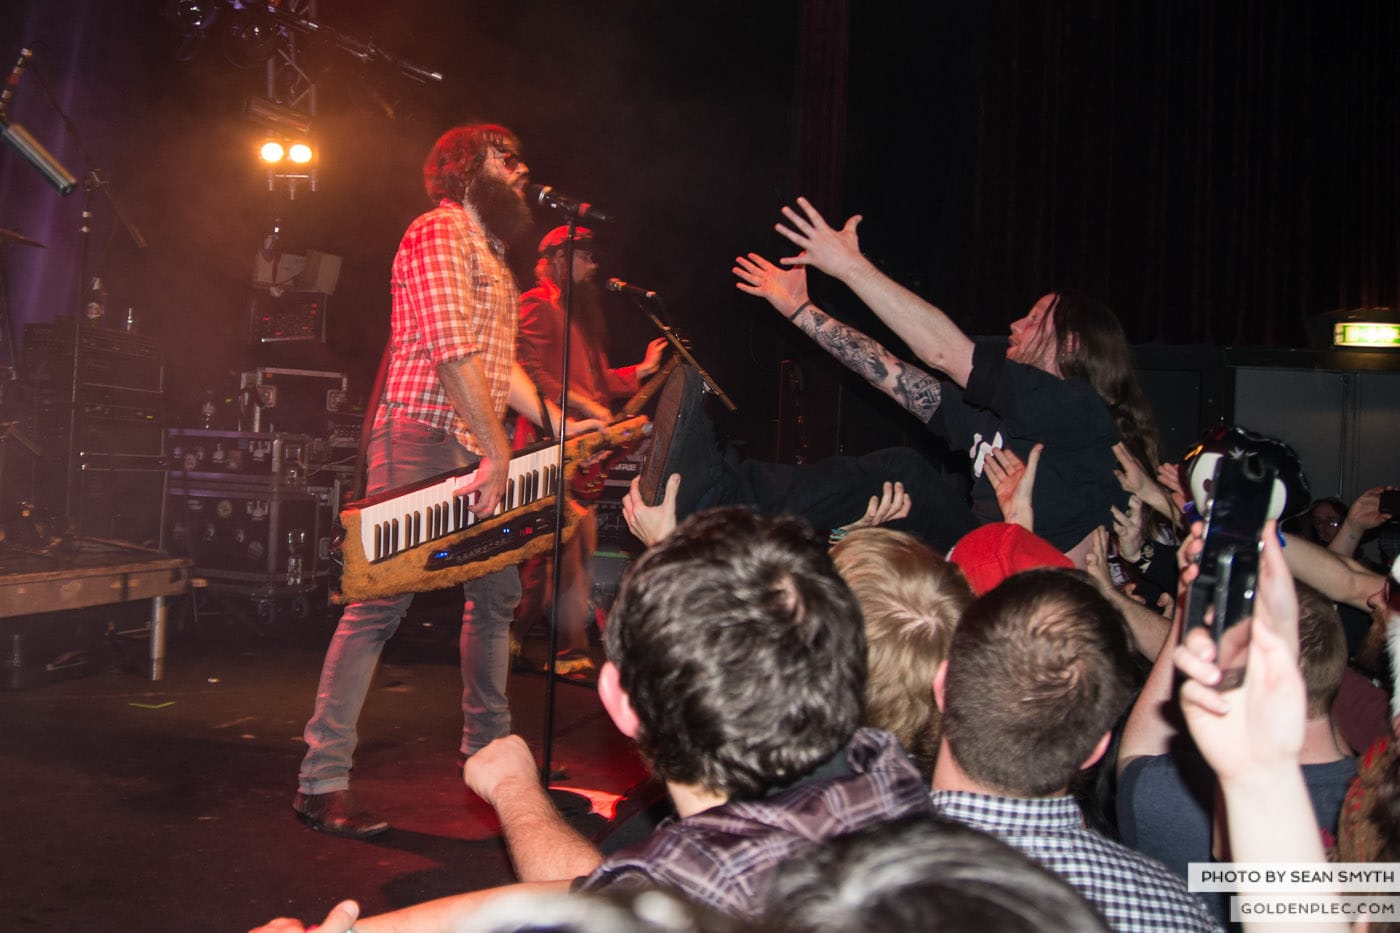 the-beards-at-button-factory-by-sean-smyth-10-12-14-39-of-49